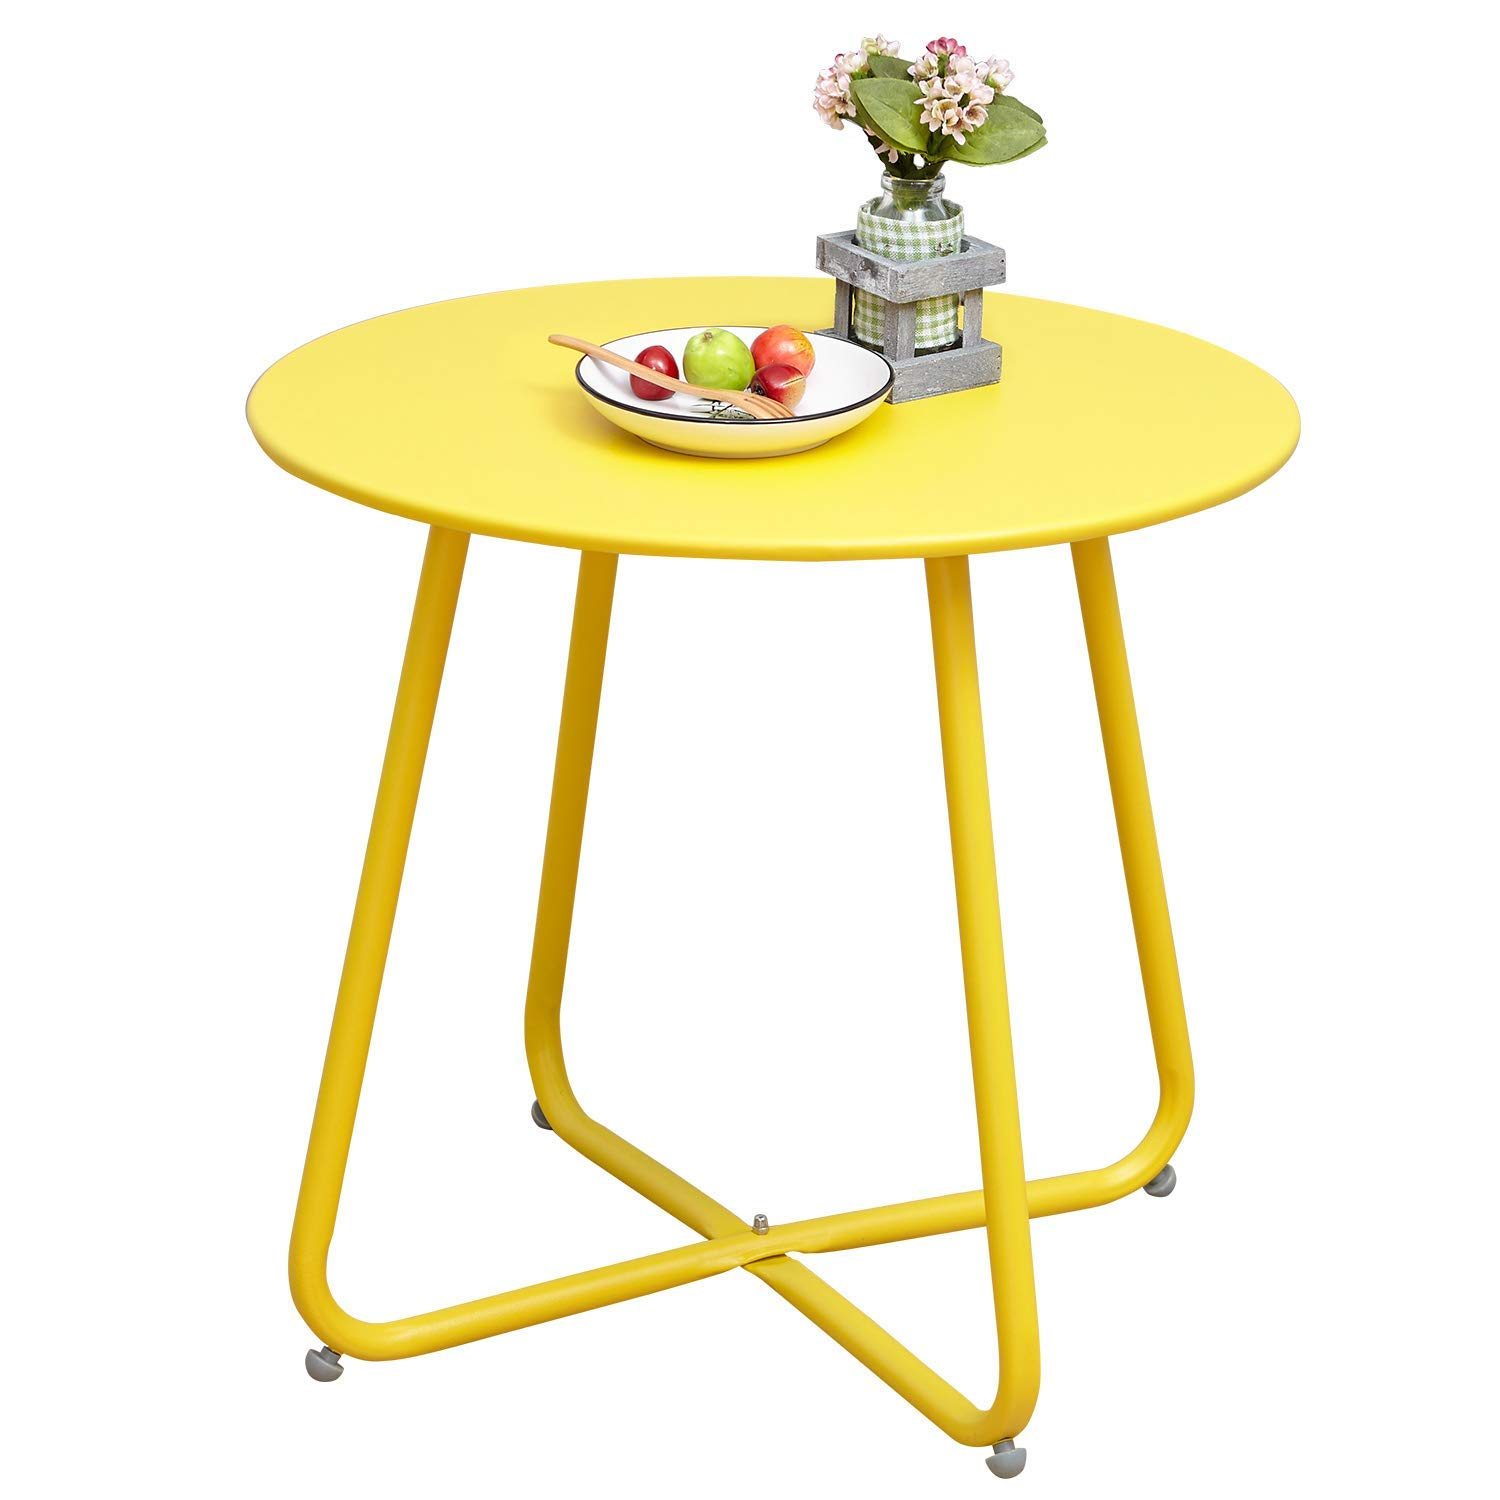 Grand Patio Steel Patio Coffee Table, Weather Resistant Outdoor Side Table, Small Round End Table, Yellow by Grand patio